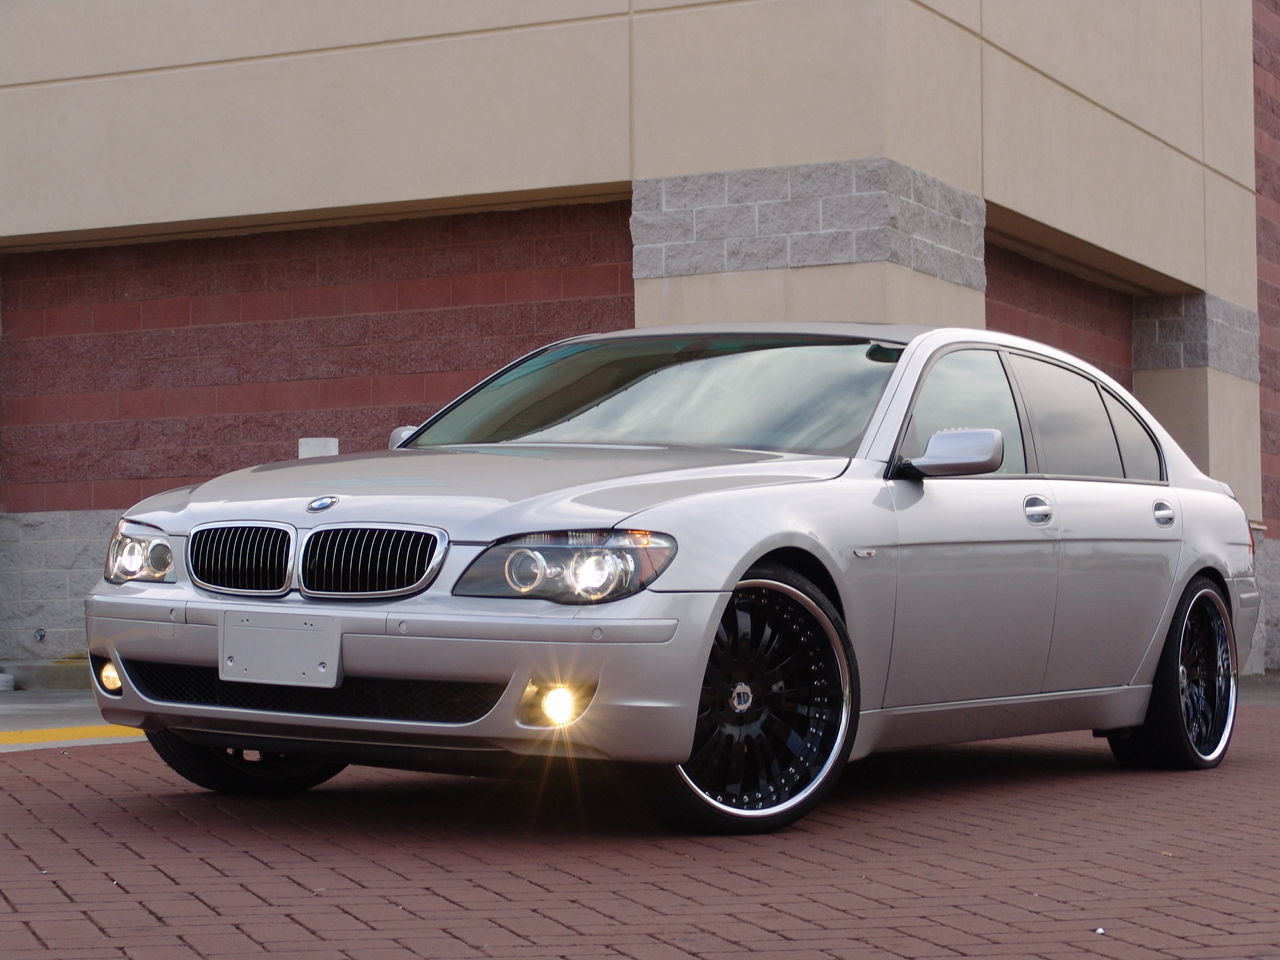 BMW Series View All BMW Series At CarDomain - 2008 bmw 750i